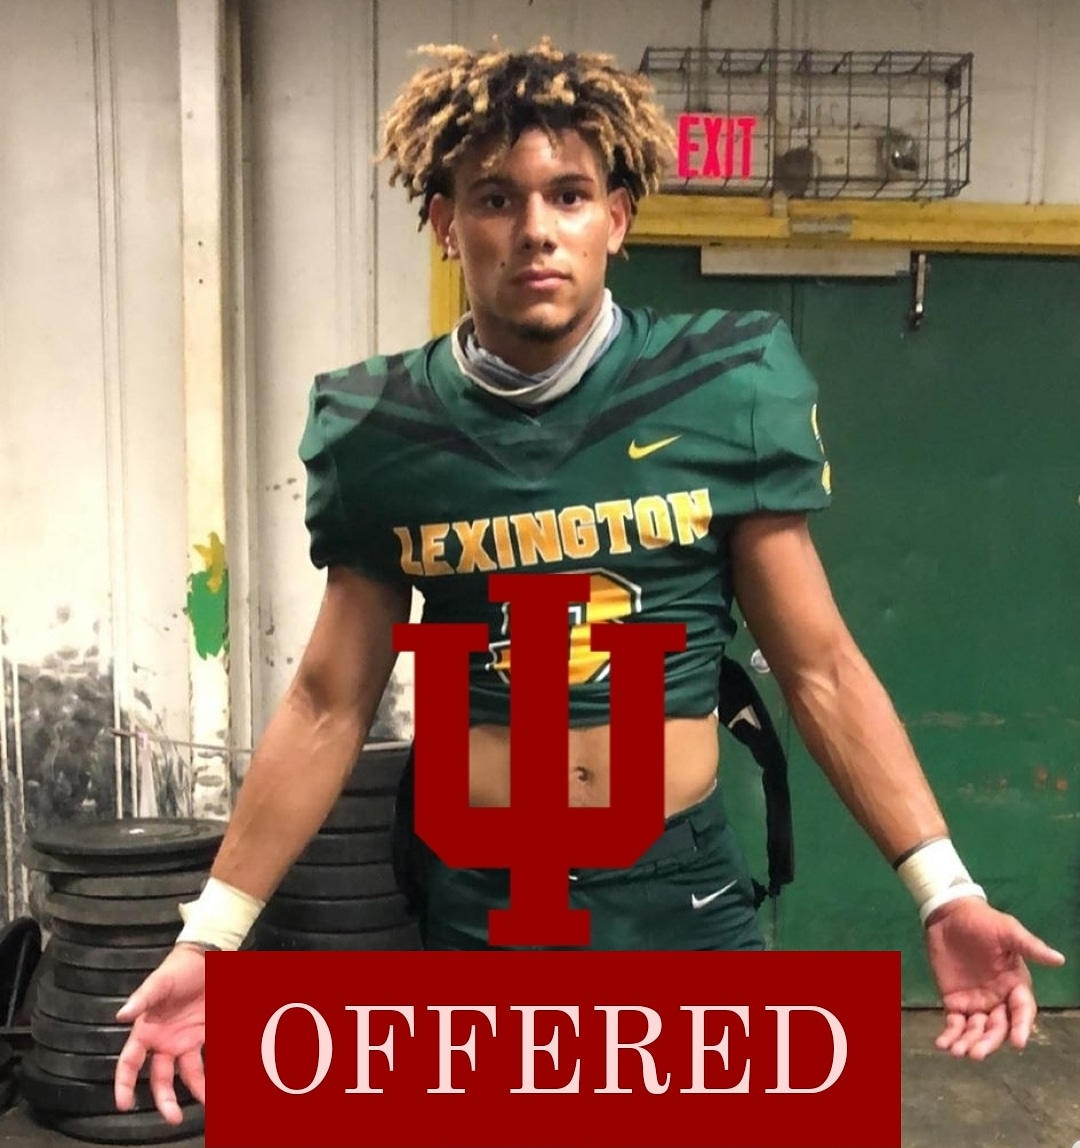 ⭐⭐⭐⭐ Austin Football Recruiting: @LTXEagleFB Jarred Kerr ('22) has been OFFERED by @IndianaFootball ‼#GoEagles #GoHoosiers #txhsfb #recruiting #austin #Texas #powerfive #collegefootball #acc #sec #big12 #pac12 #mountainwest #mac #American #sunbelt #reconathlete  @JarredKerr3 https://t.co/54aeI92oVM